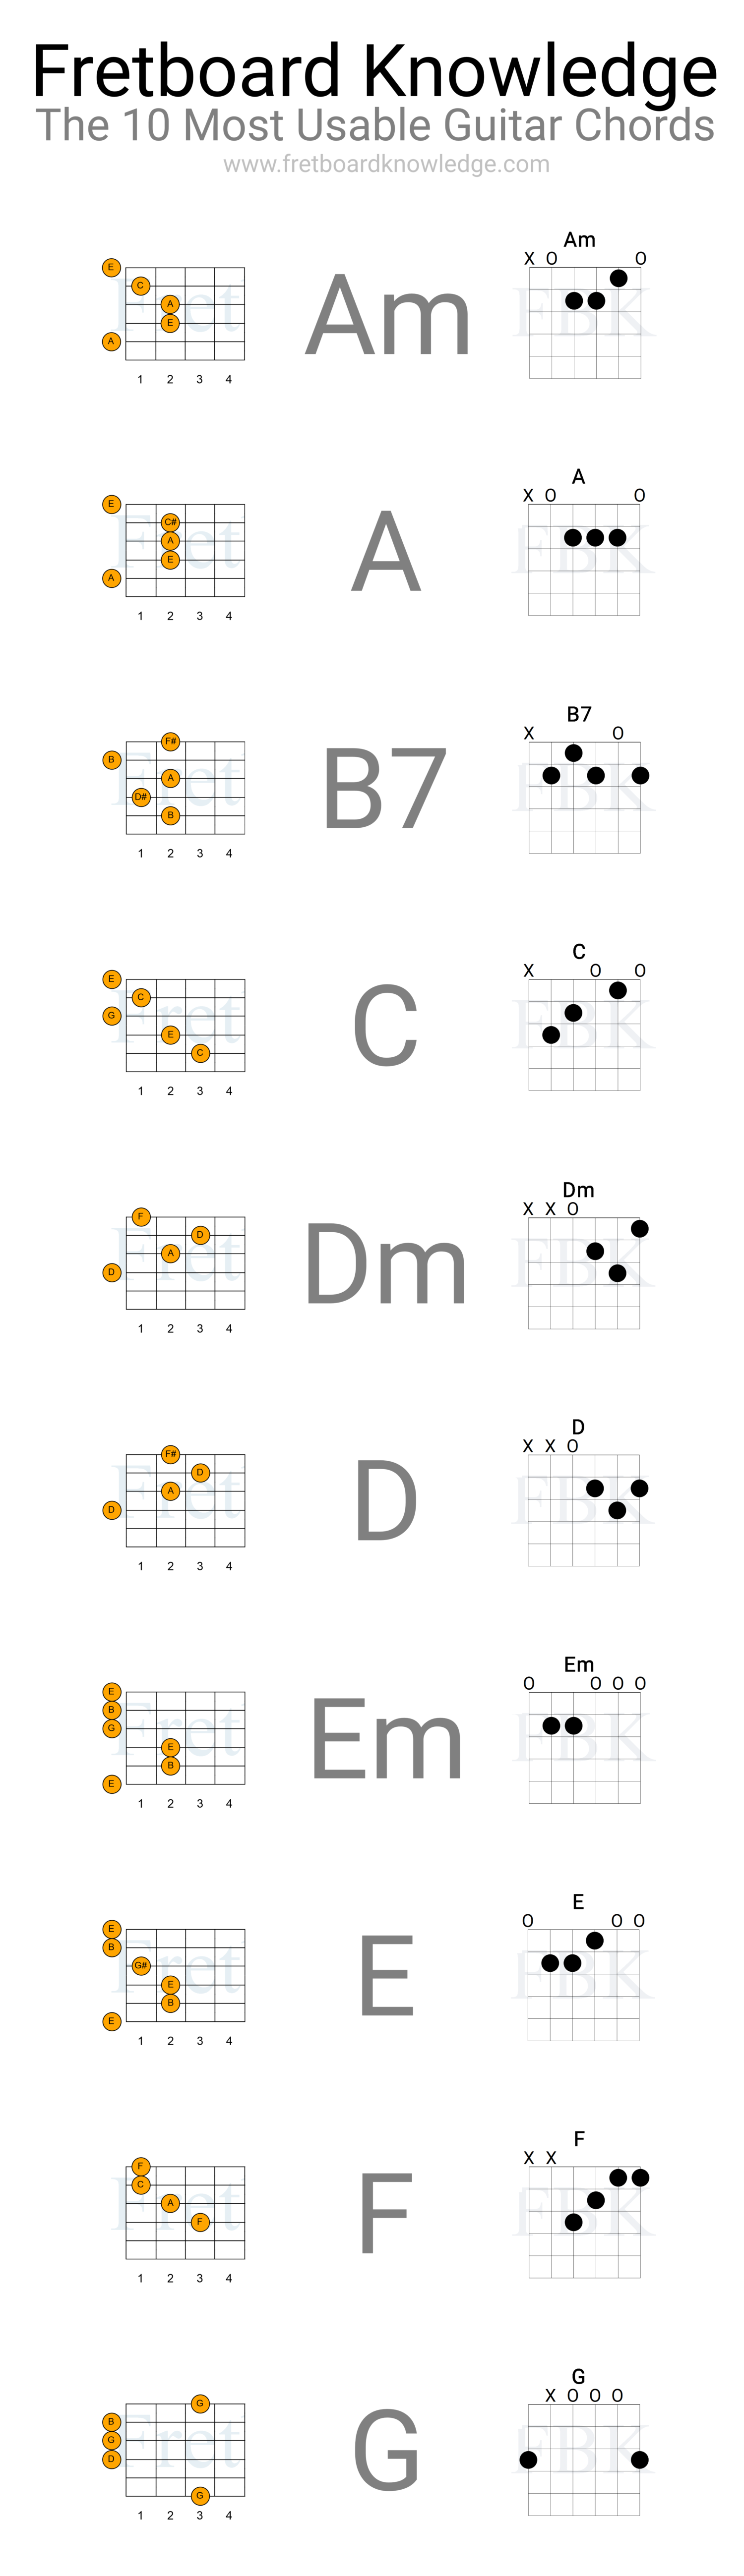 C Major Guitar Chord Archives Guitar Fretboard Knowledge